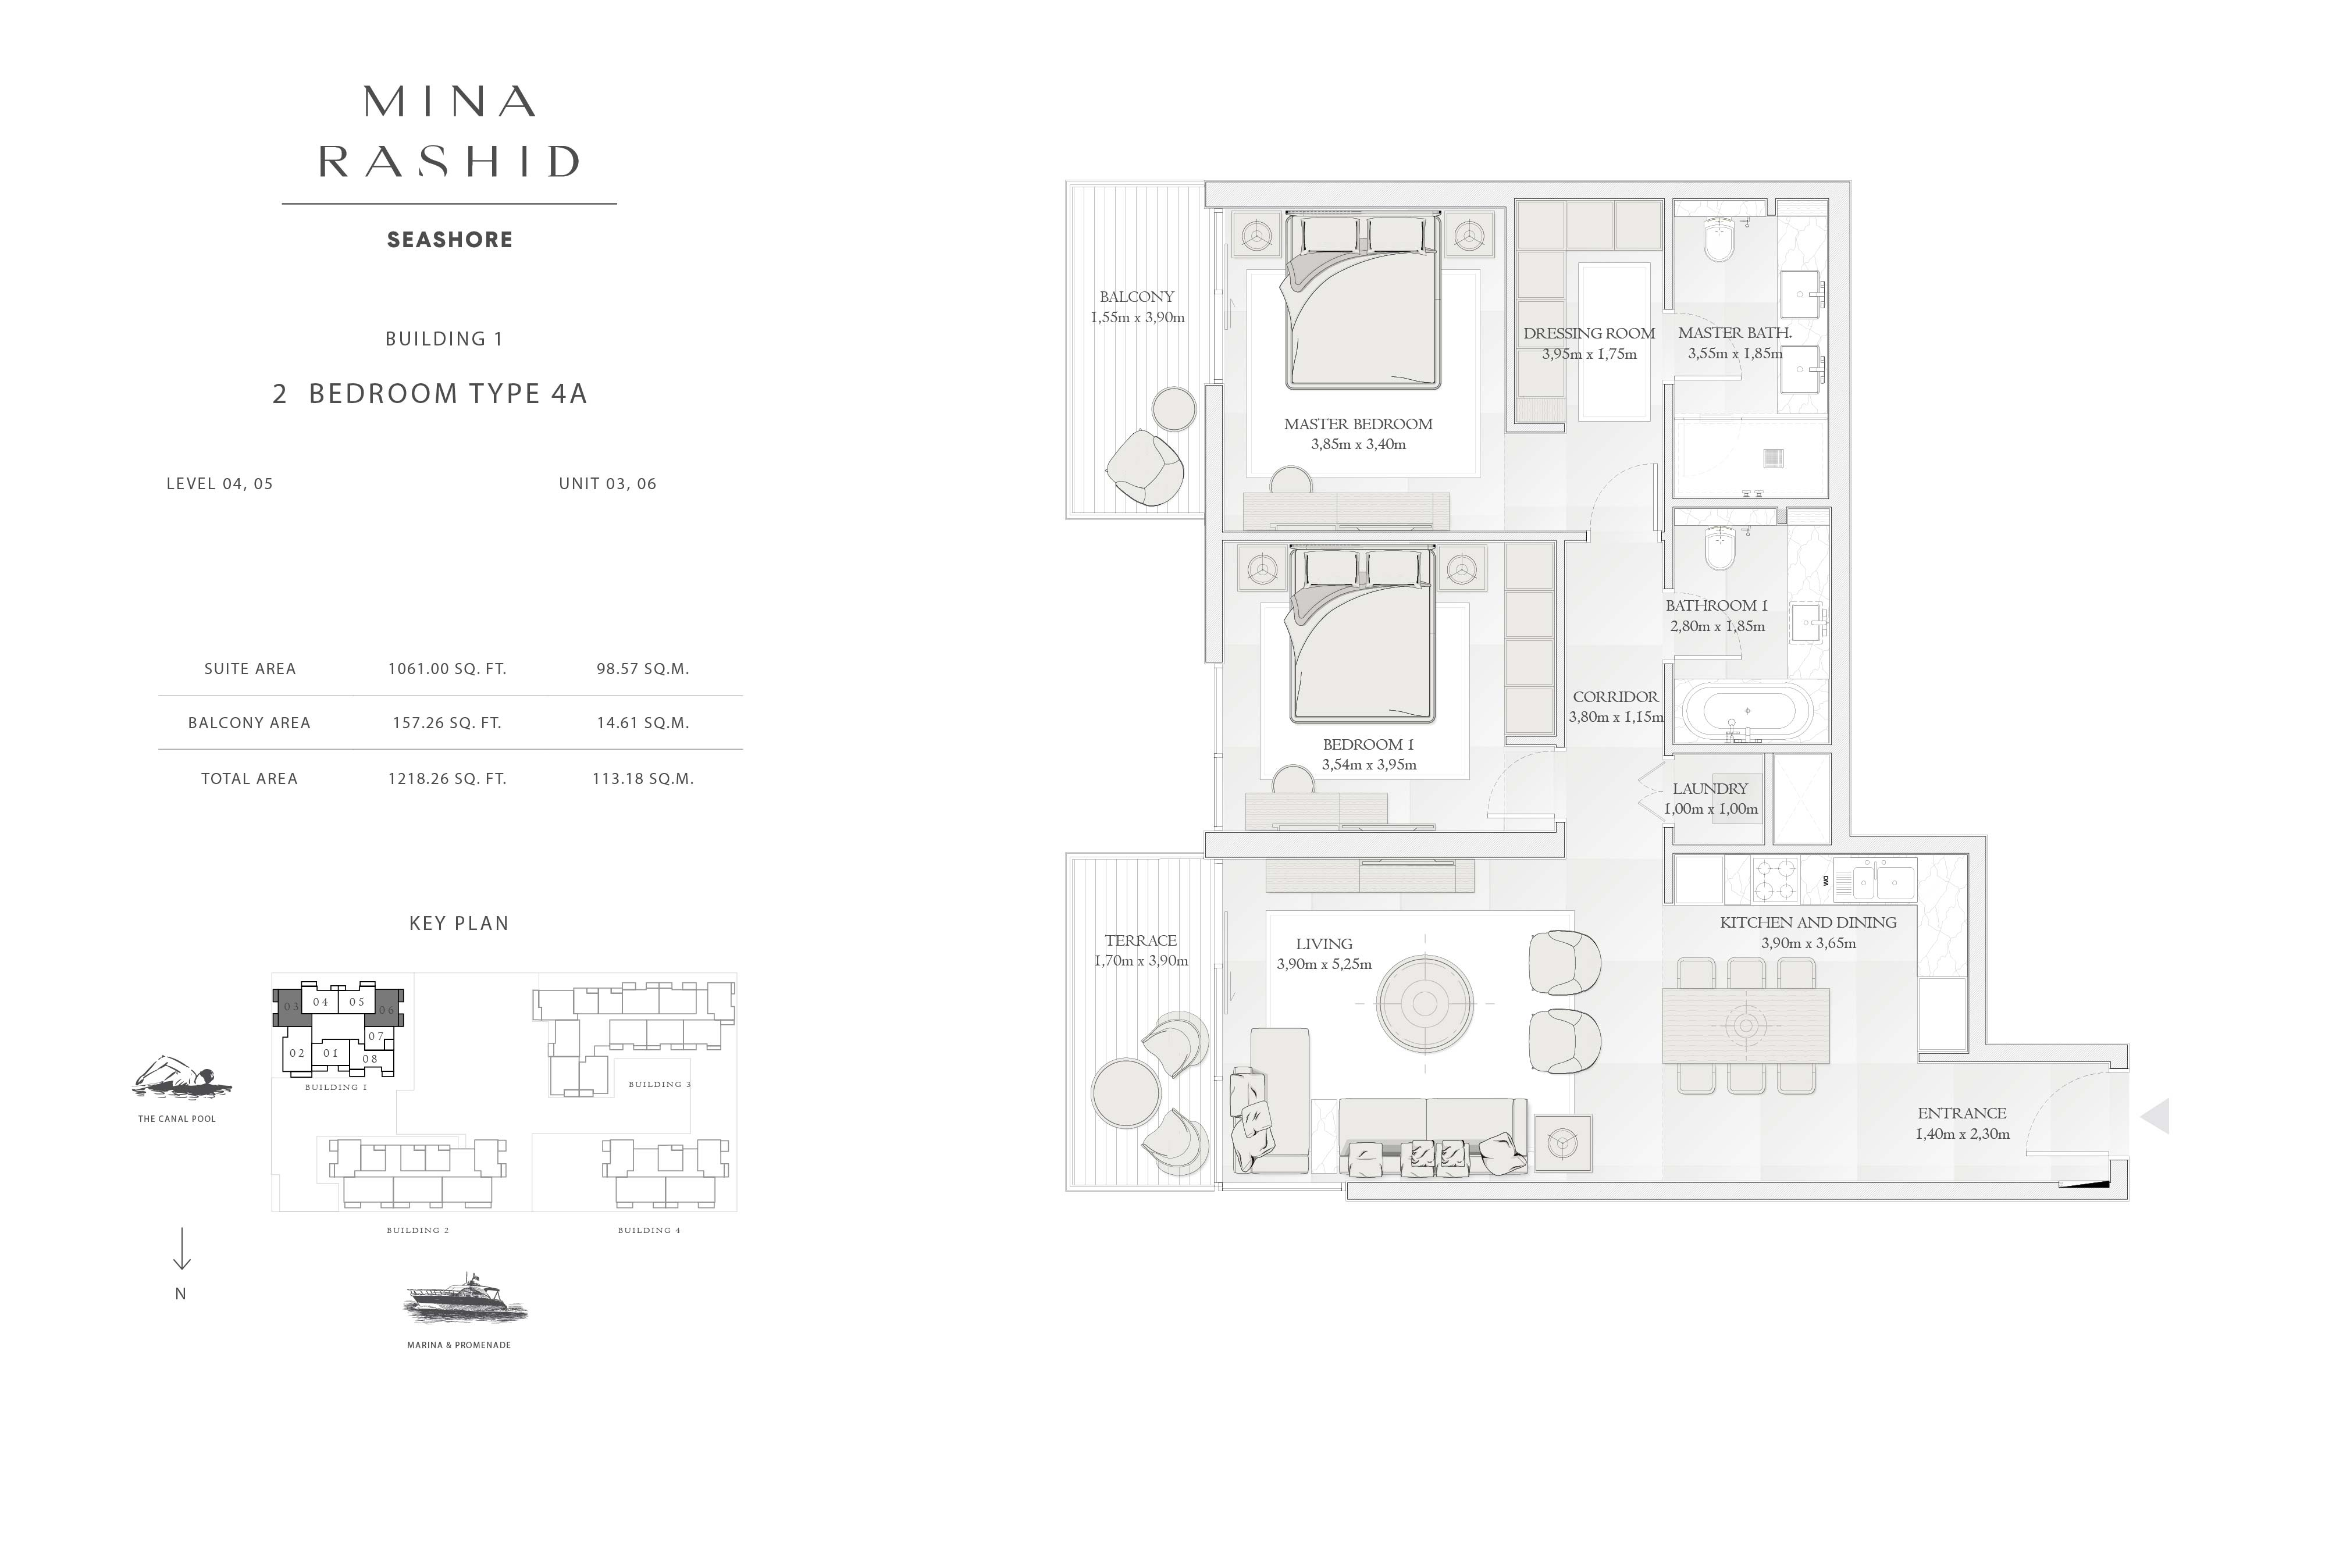 Building-1, 2-Bedroom-Type-4A, Size-1218-Sq-Ft